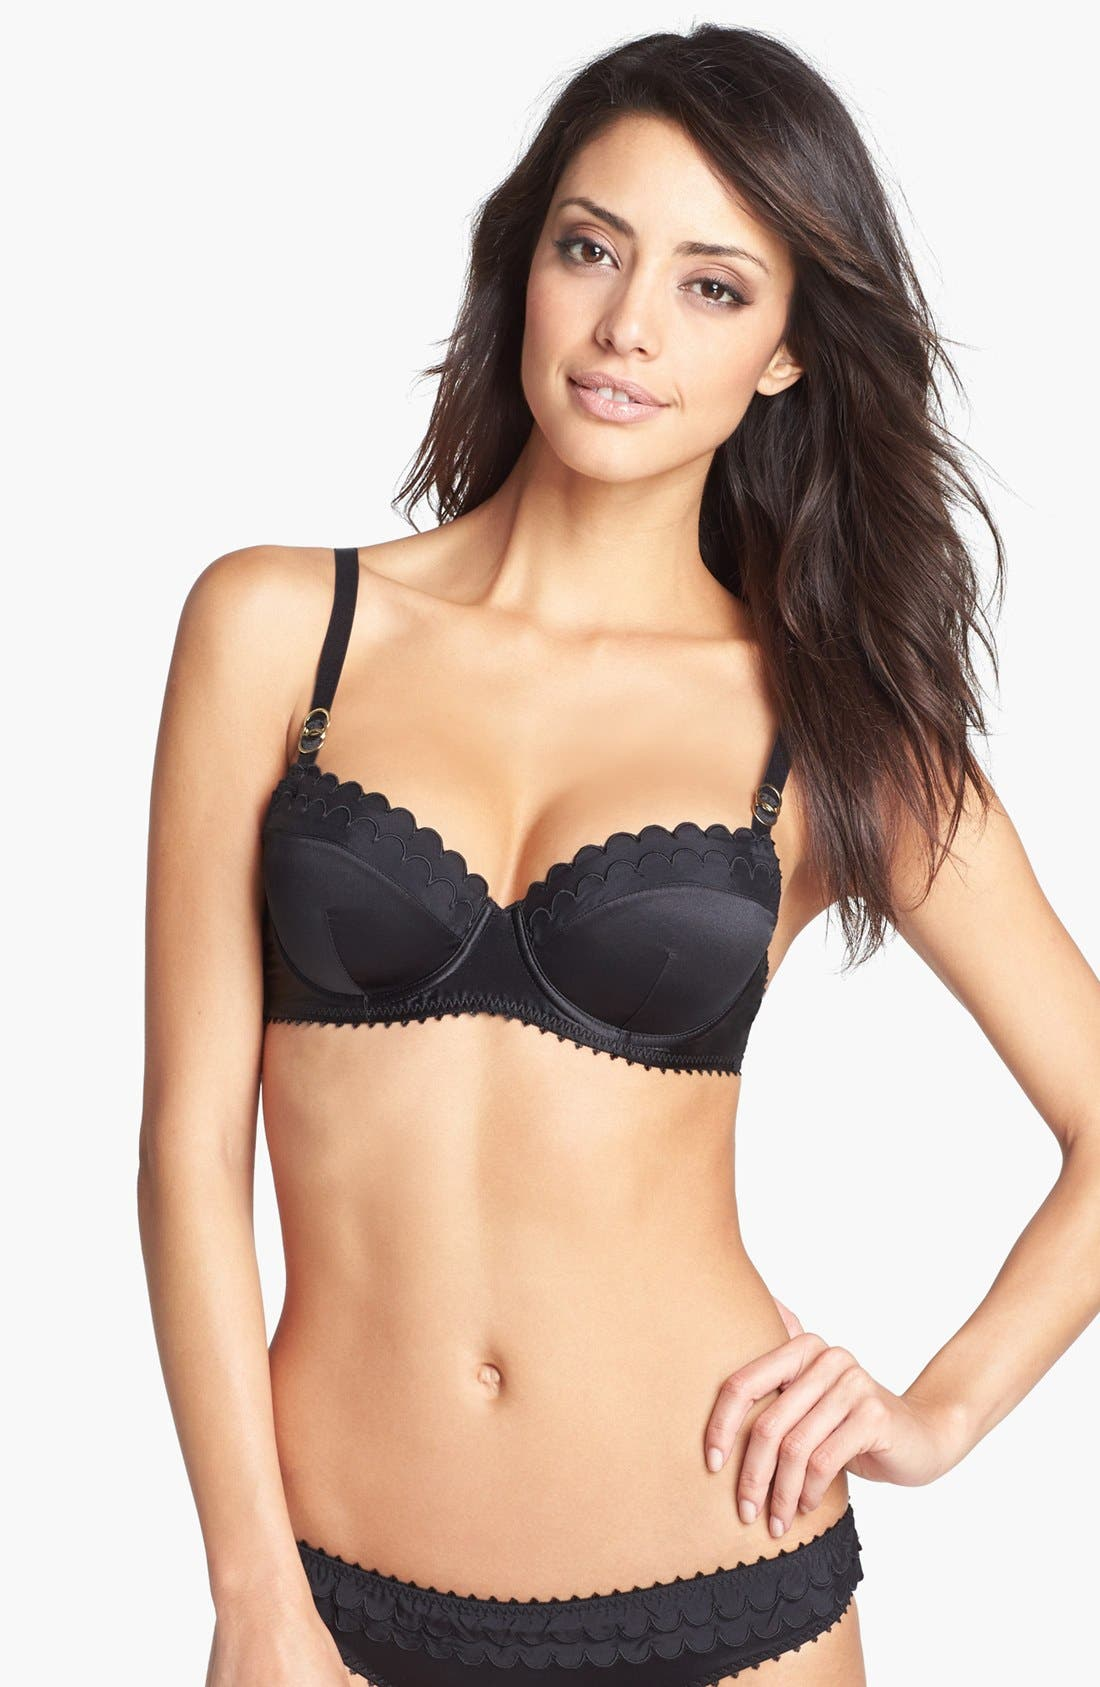 Main Image - Stella McCartney 'Becky Smiling' Underwire Balconette Bra